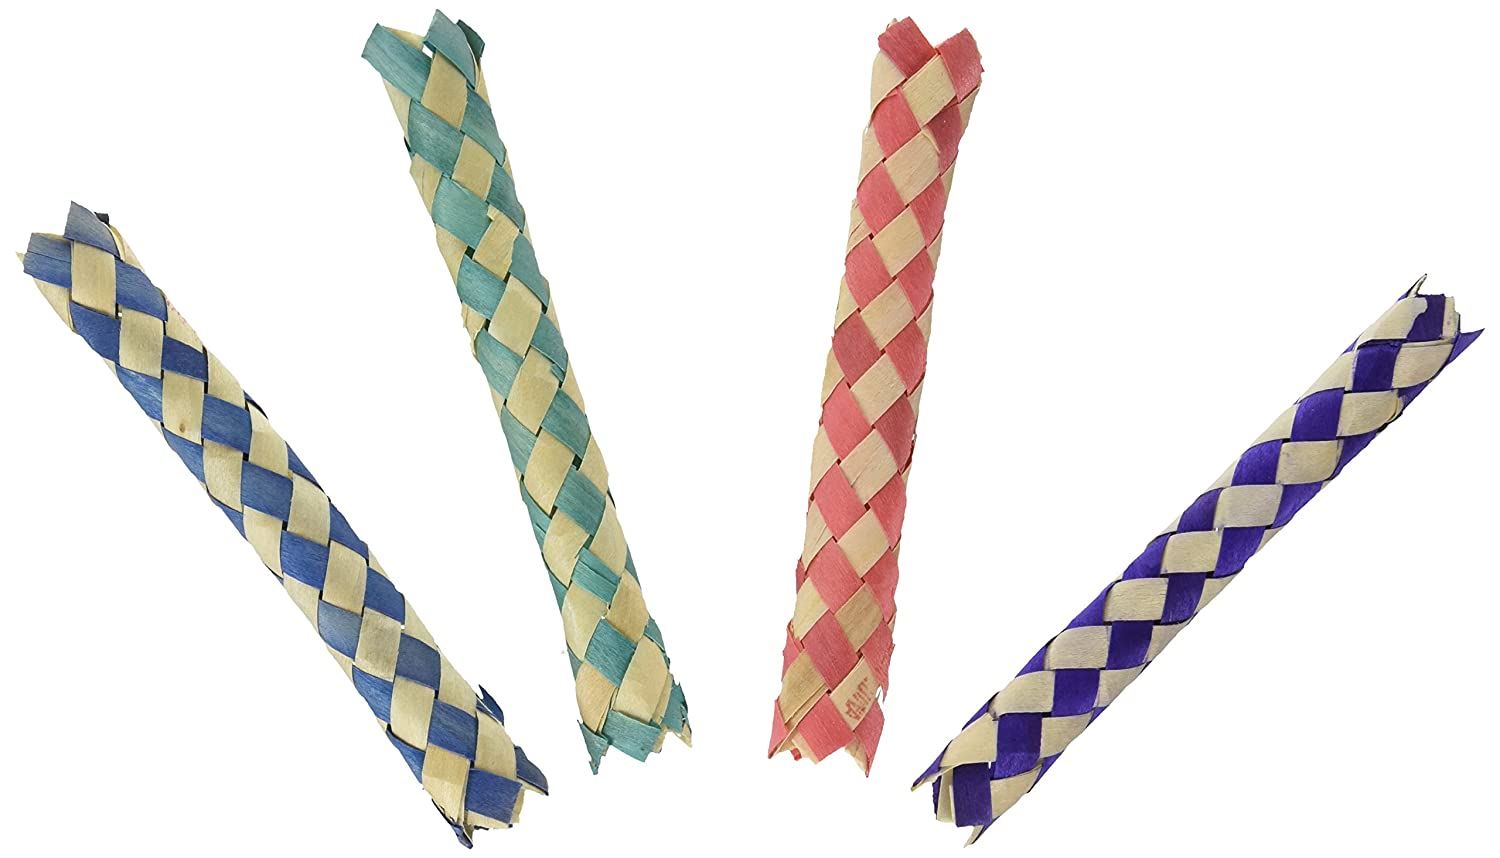 12 Chinese Finger Traps - Assorted Colors RIN